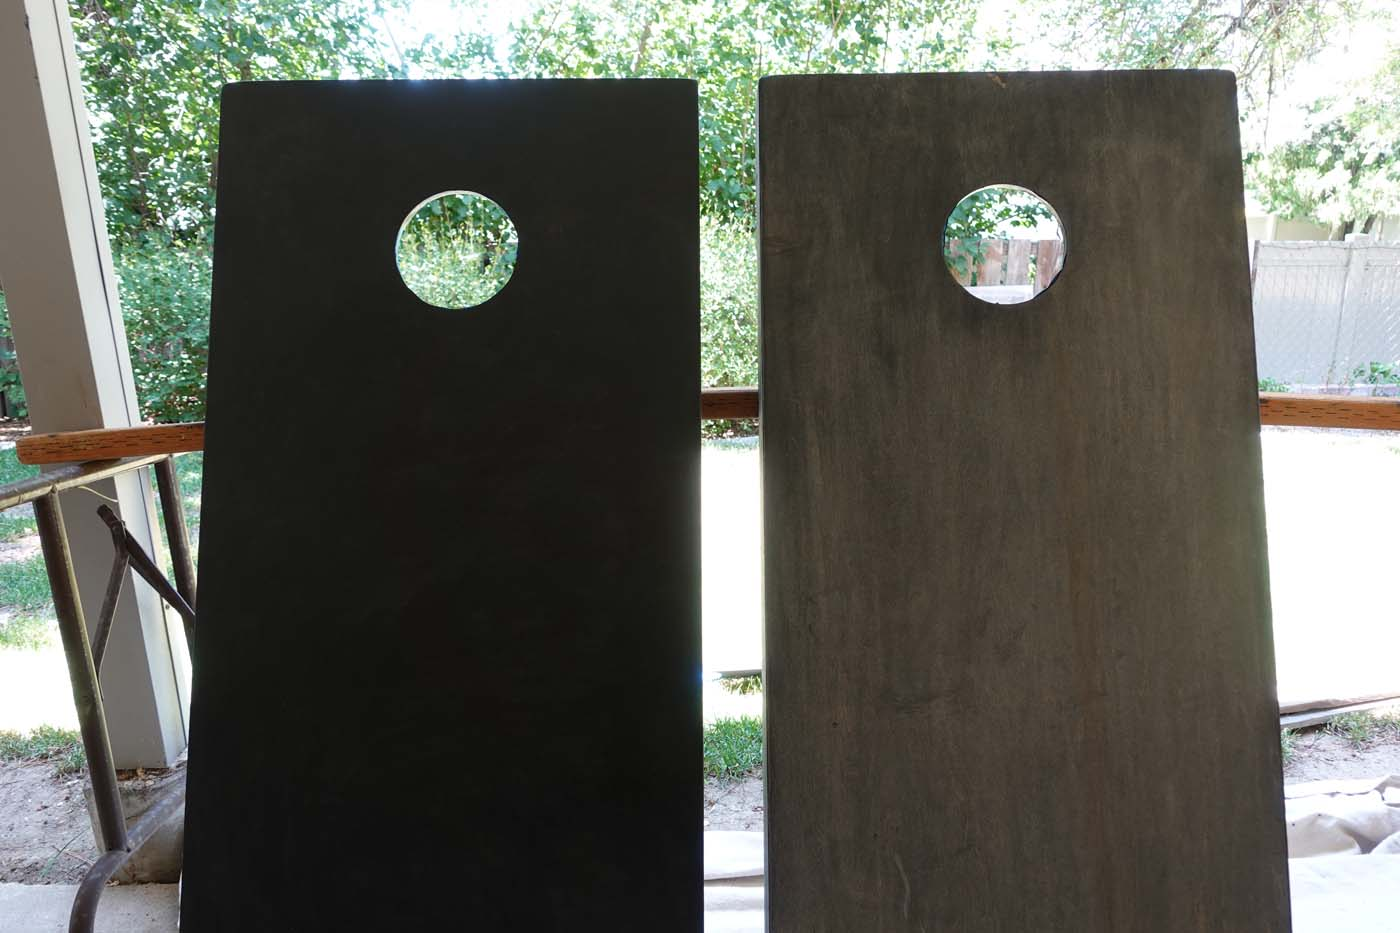 Comparison of too much stain vs. stain wiped off so it dries